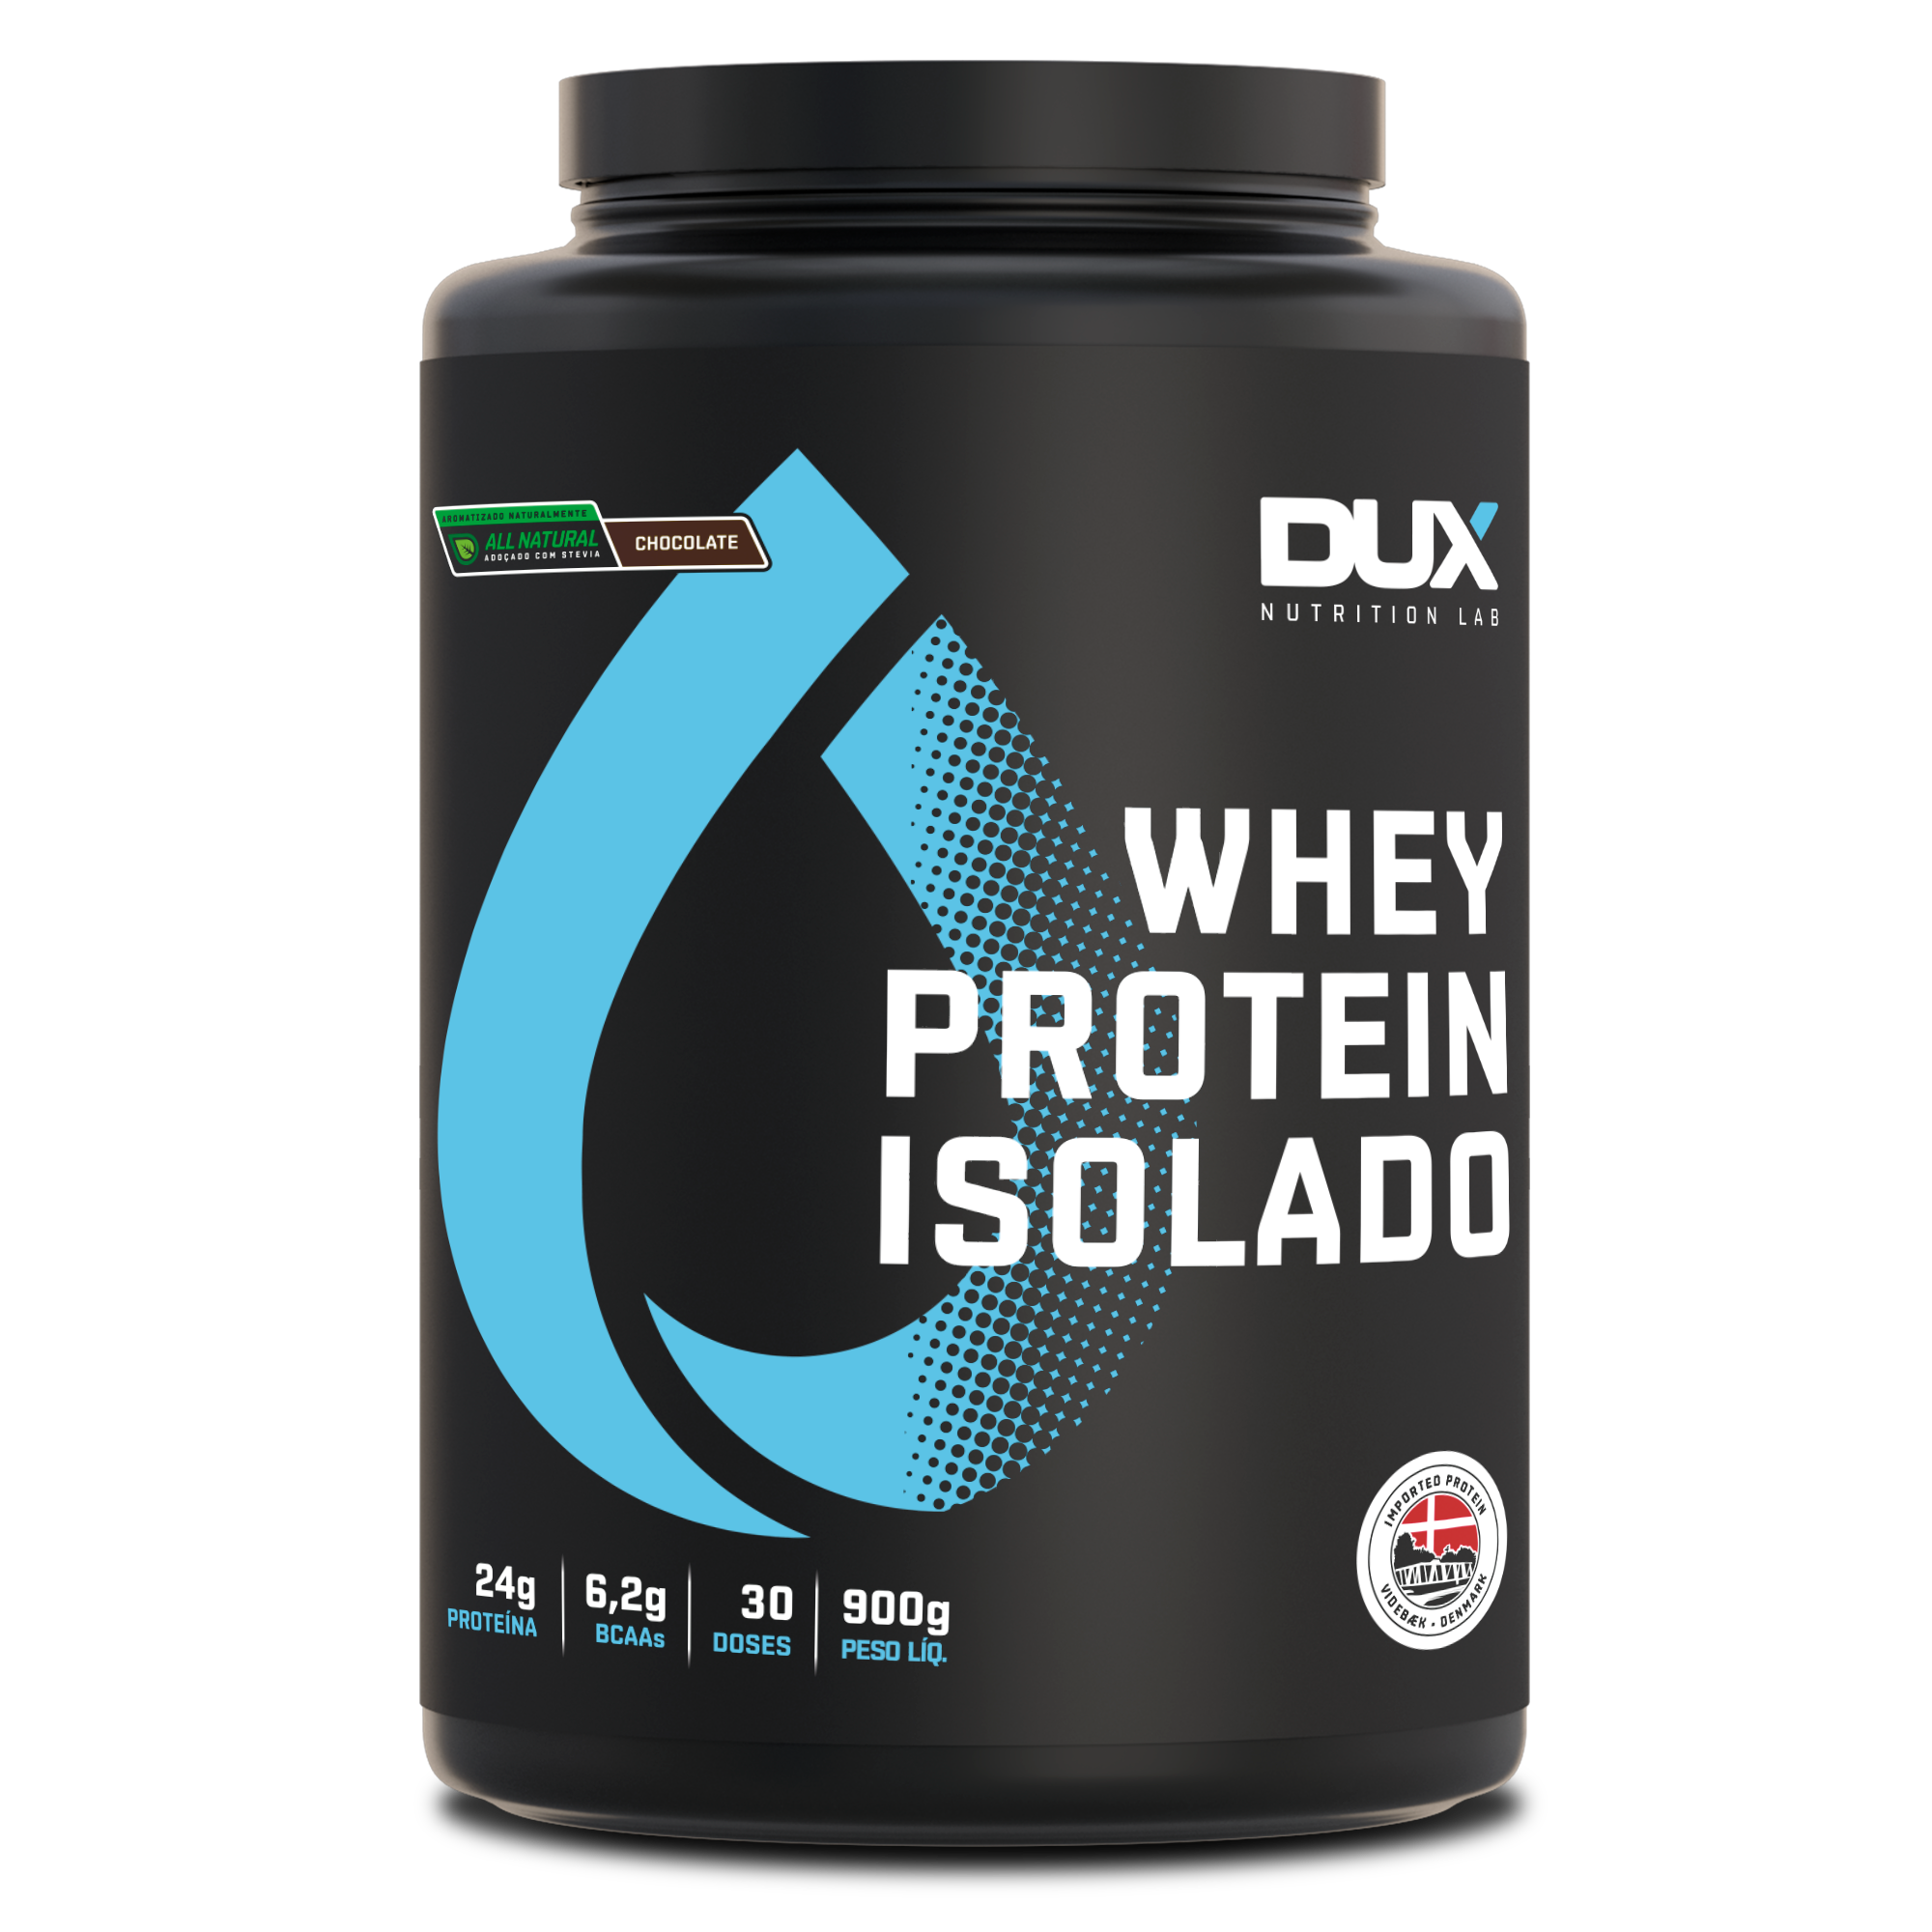 Whey Protein Isolado 900g All Natural - Dux Nutrition